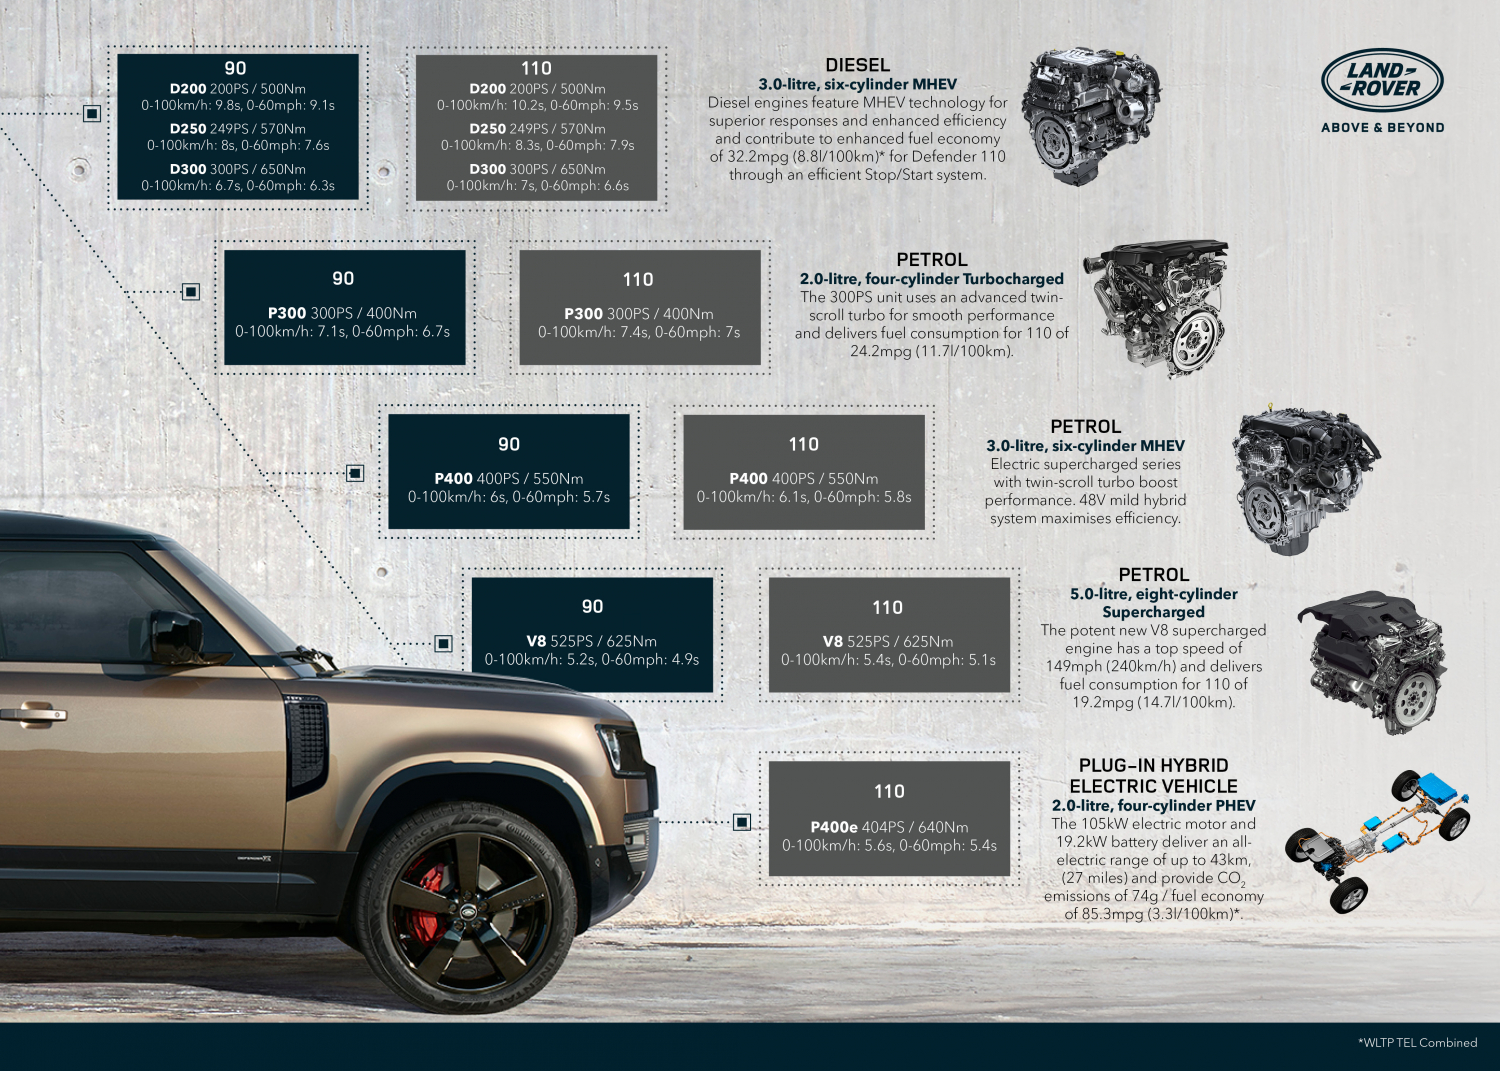 Land Rover Defender Crowned Supreme Winner Women's World Car of the Year 2021 - Image 1